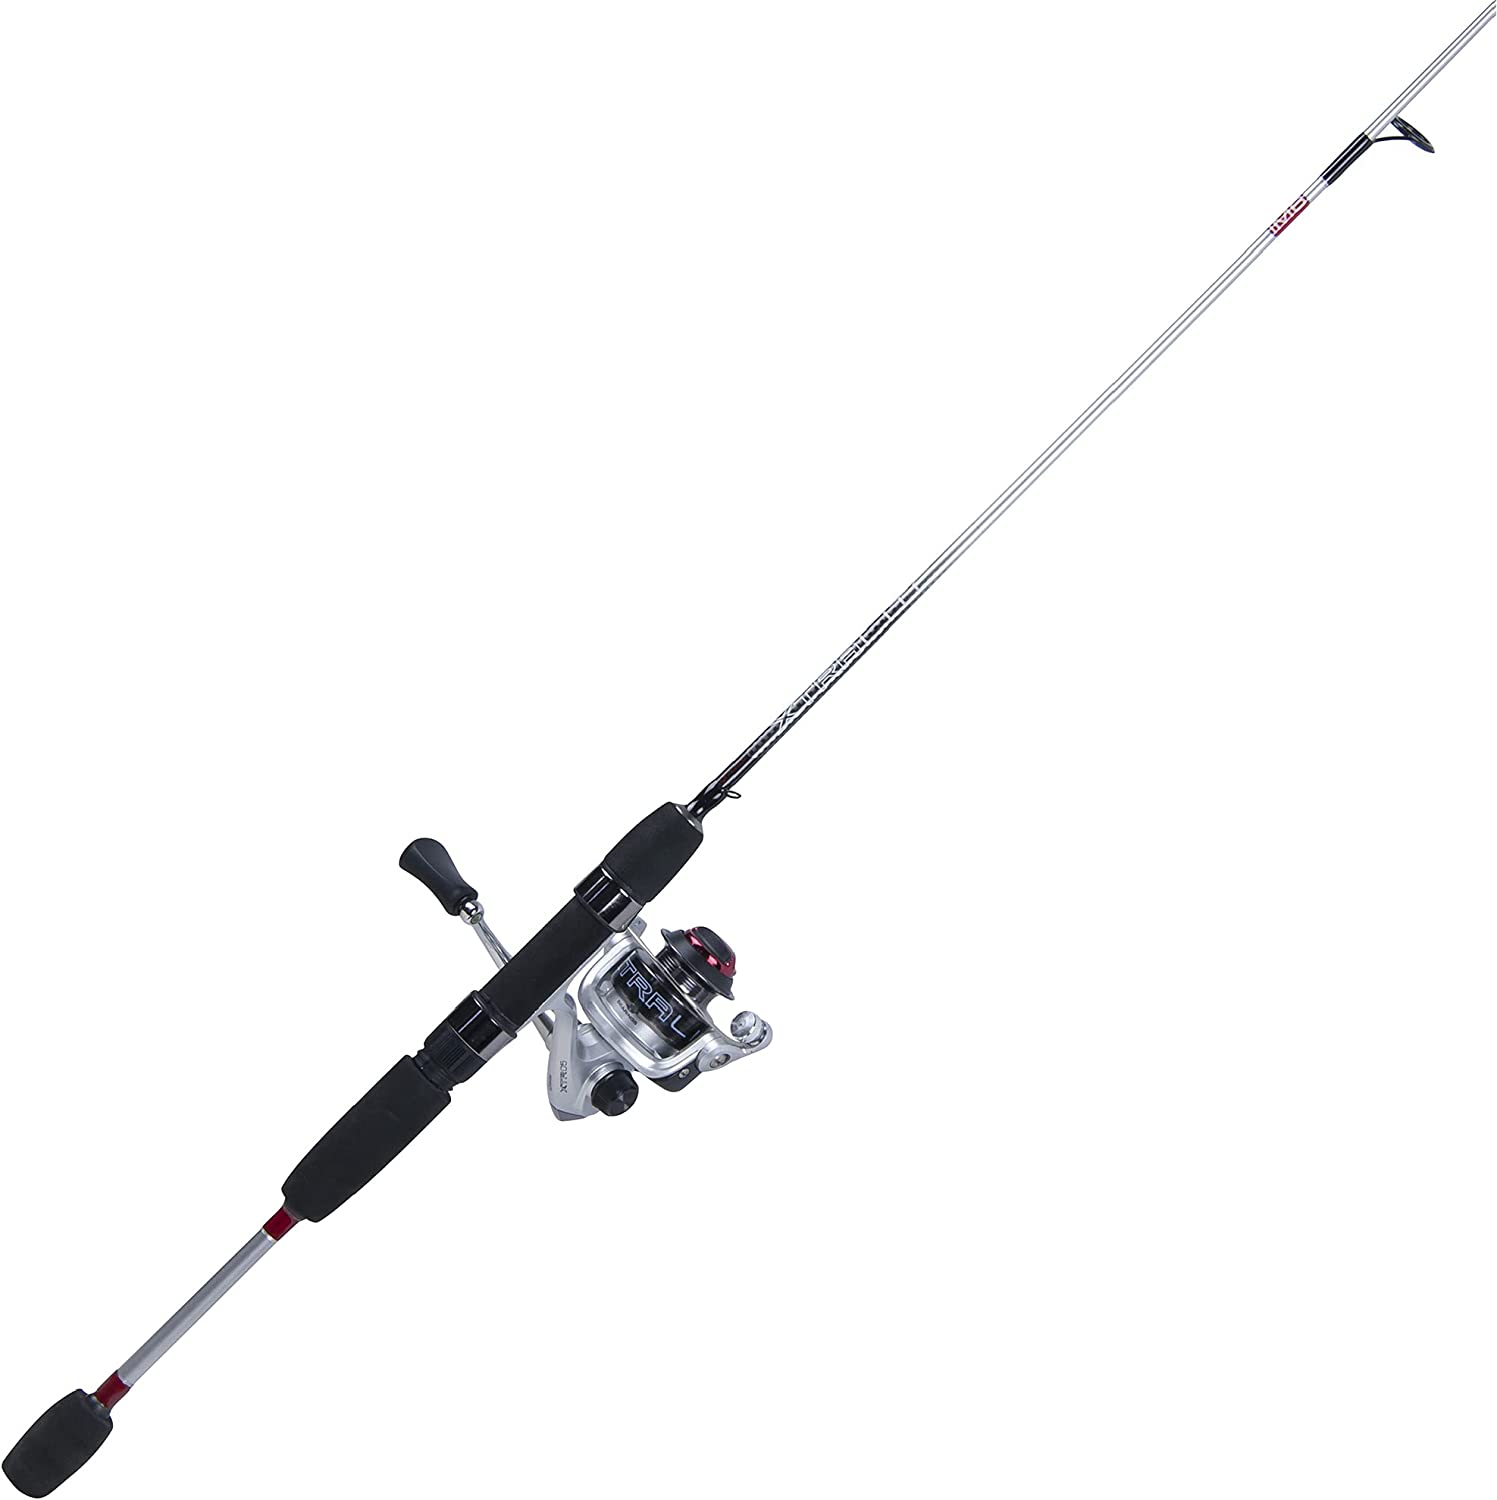 Zebco Japan Maker New OFFicial store Xtralite XTR05 XTS502UL Spinning Reel and Combo One Rod S